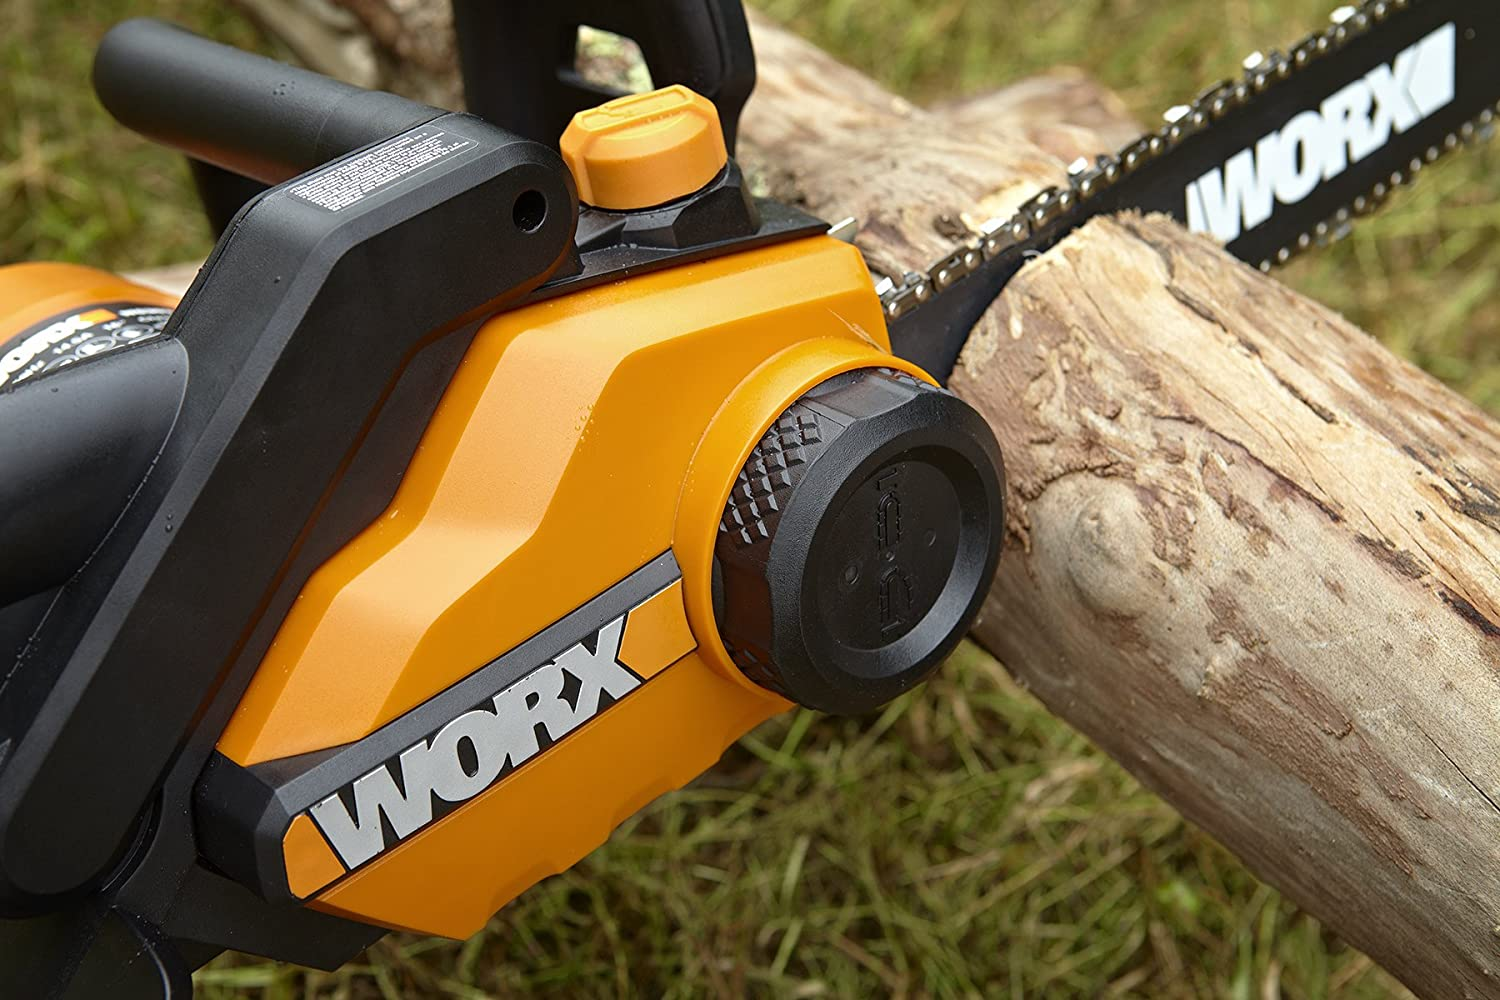 WORX WG303.1 featured image 3